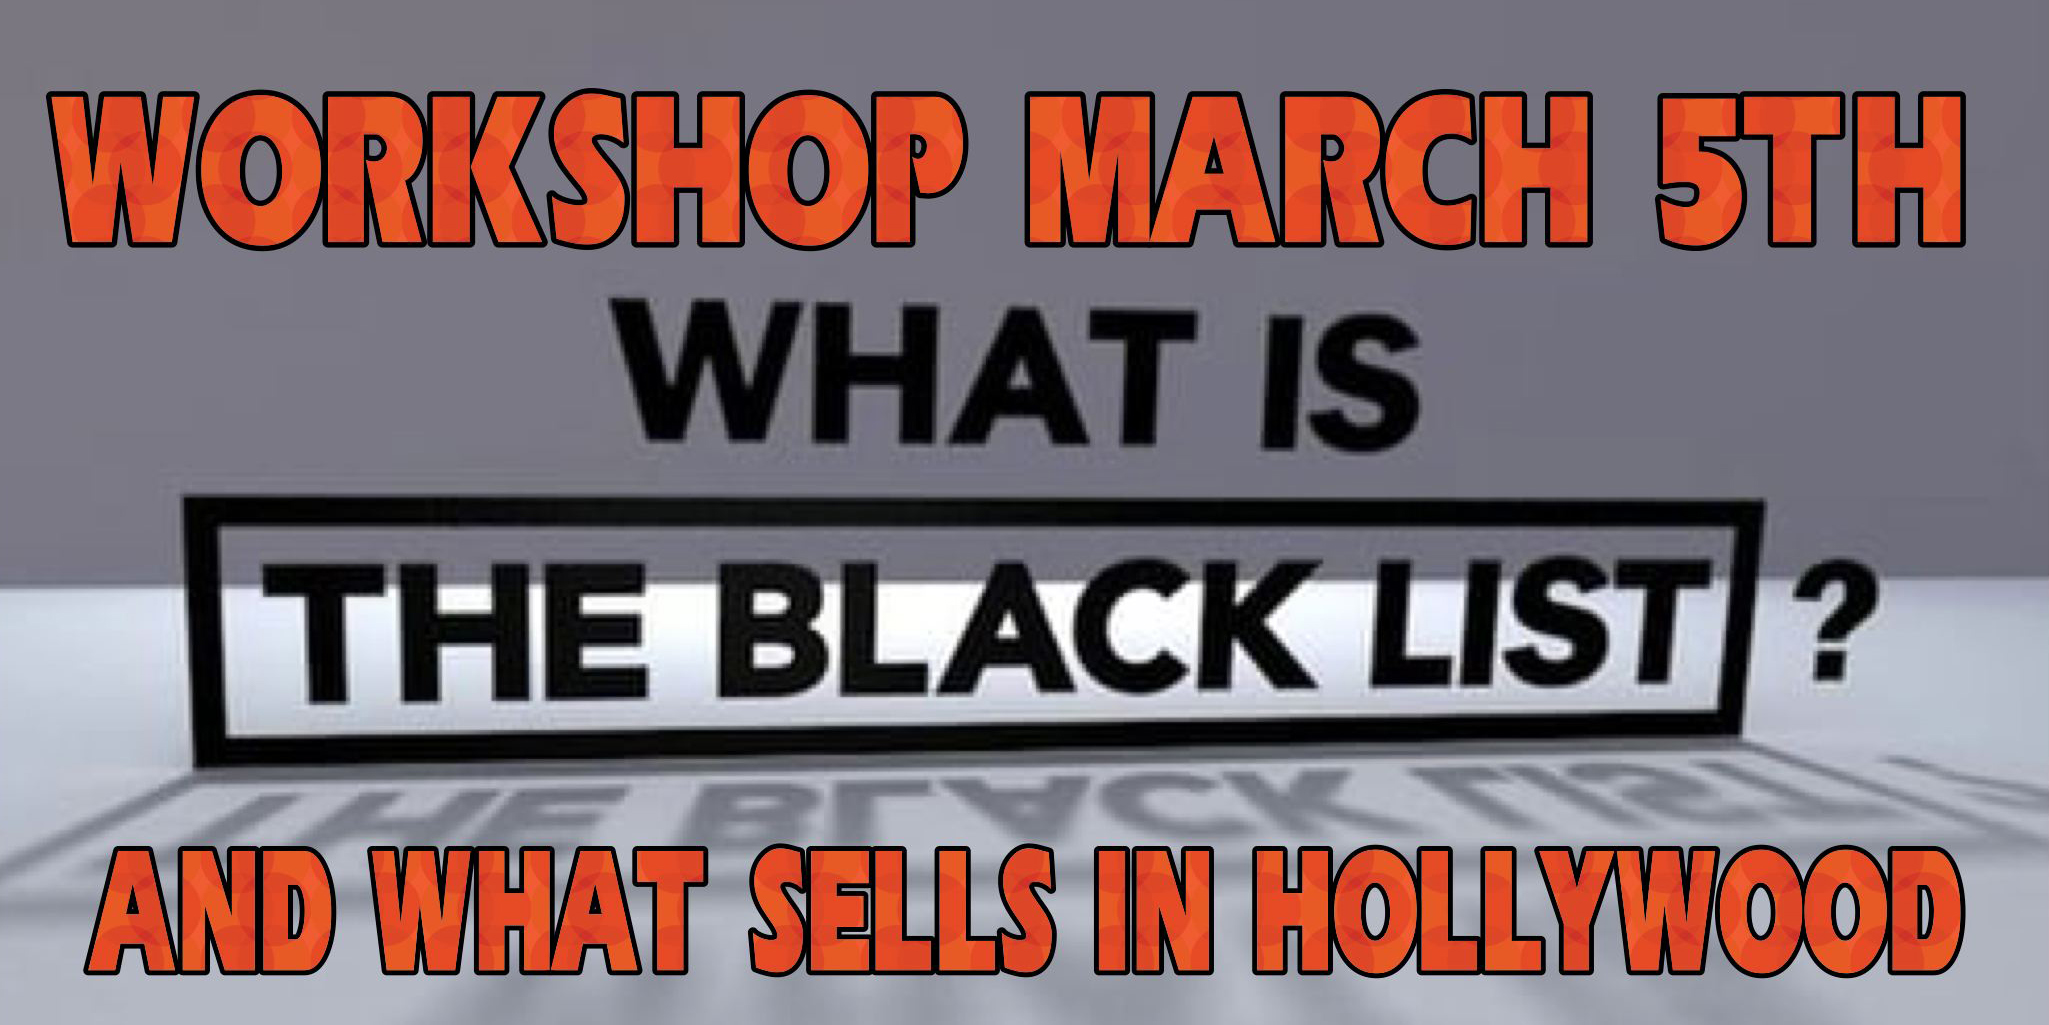 On March 5th, We Look at The Blacklist Script Service and